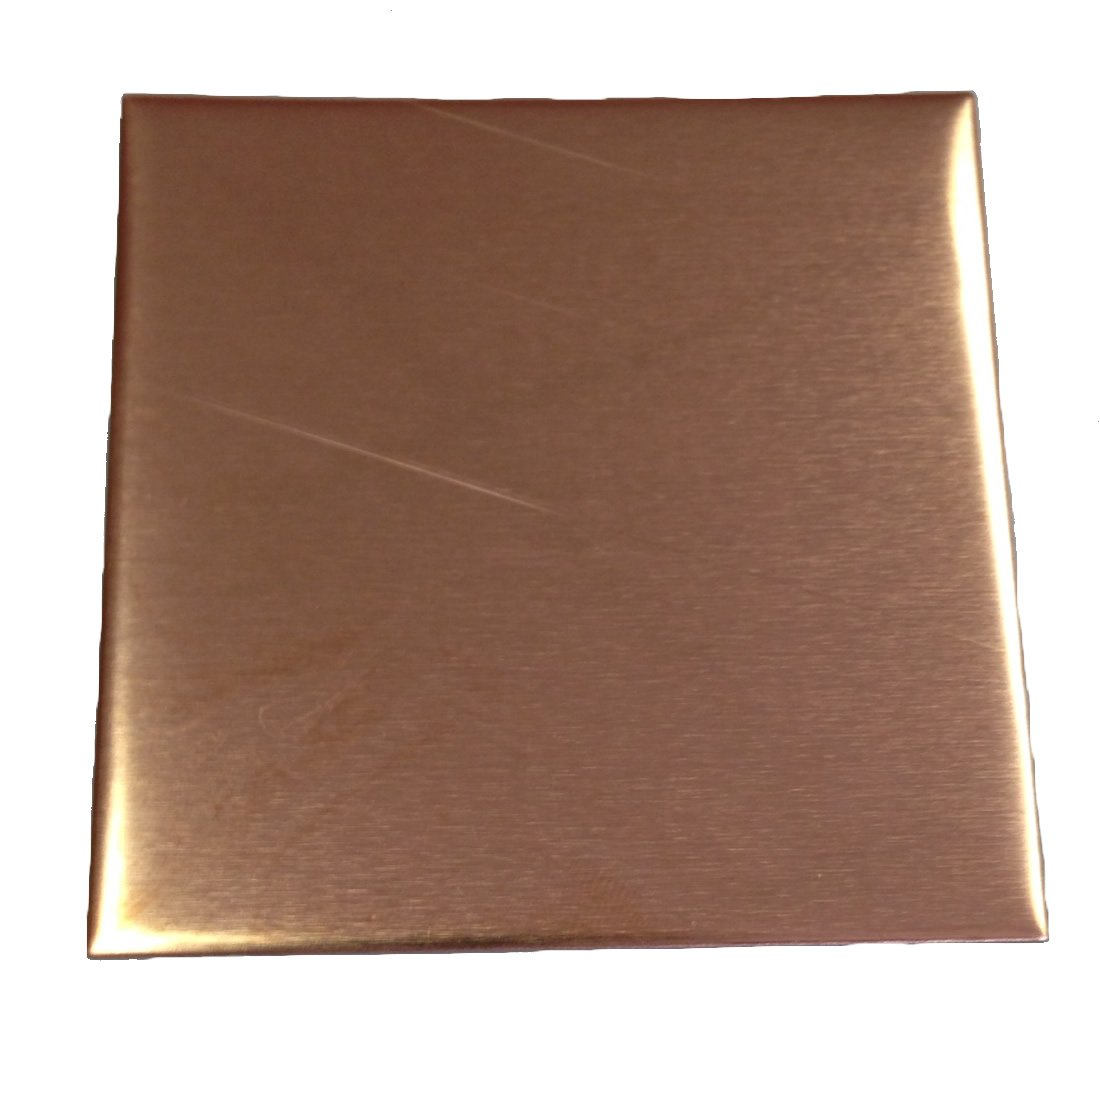 RMP Stamping Blanks, 3, Square, 16 Oz. Copper, 24 Ga. - 3 Pack 3 Rose Metal Products L440070-SQ-3000